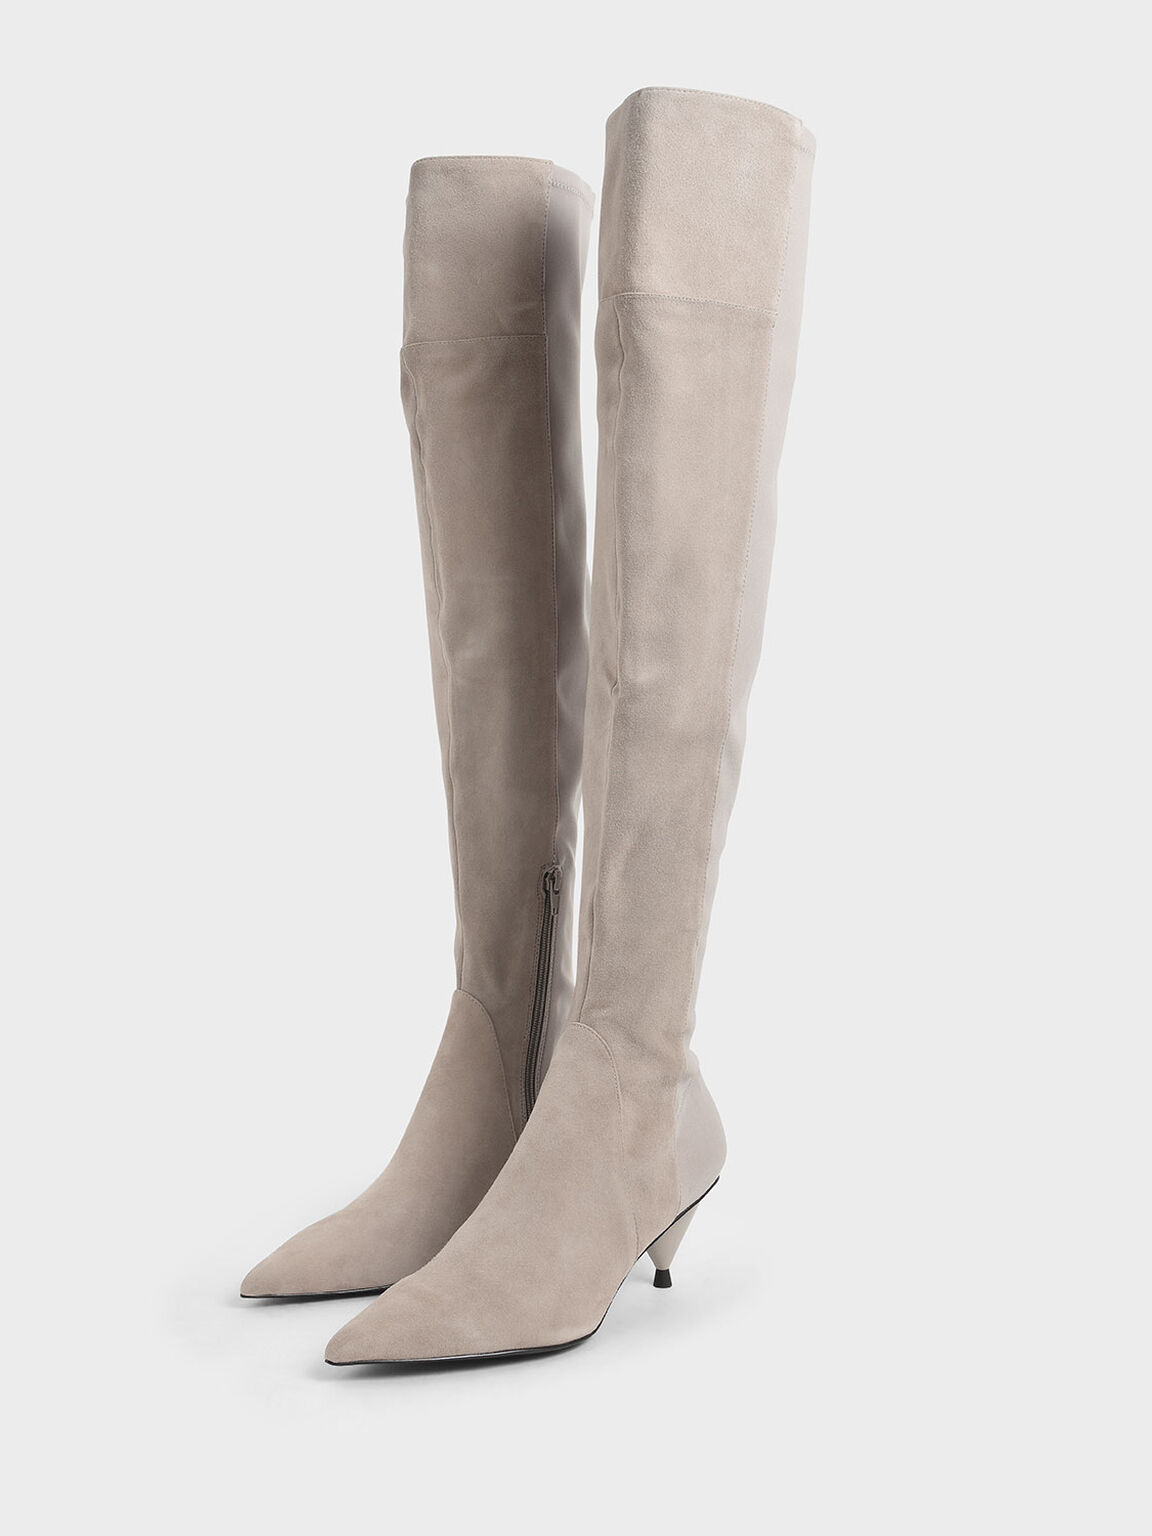 Kid Suede Thigh High Boots, Grey, hi-res